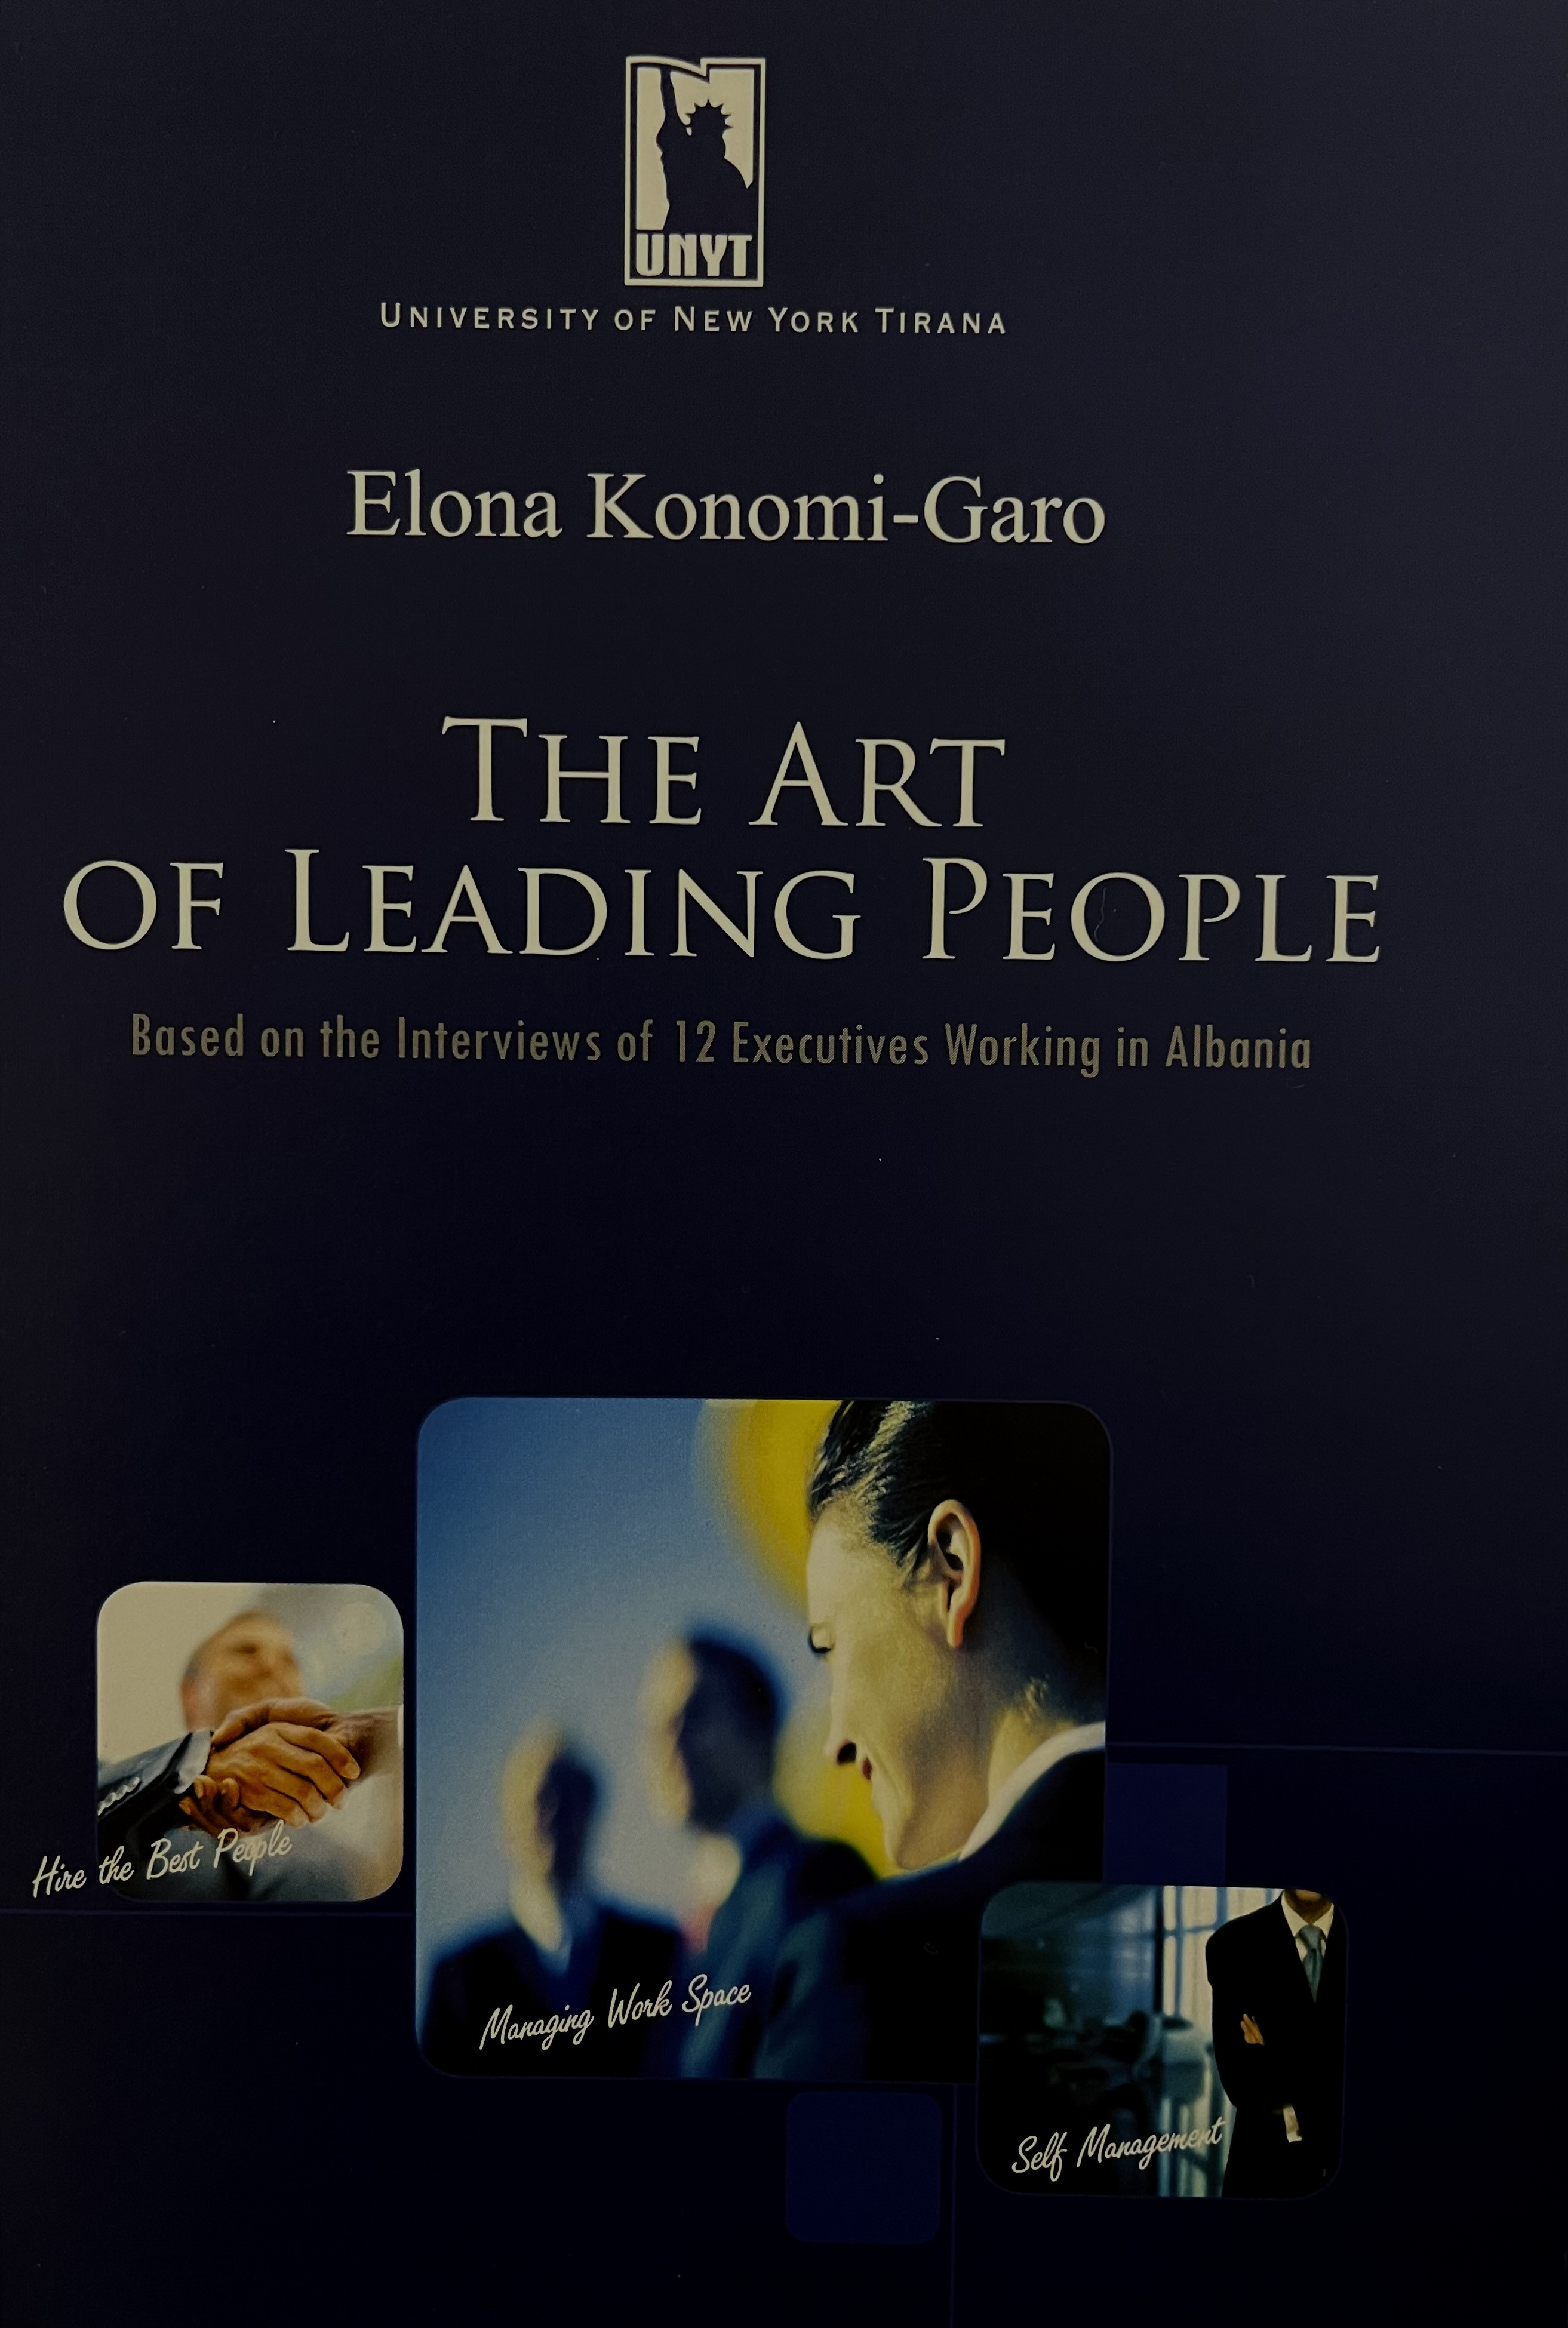 The art of leading people